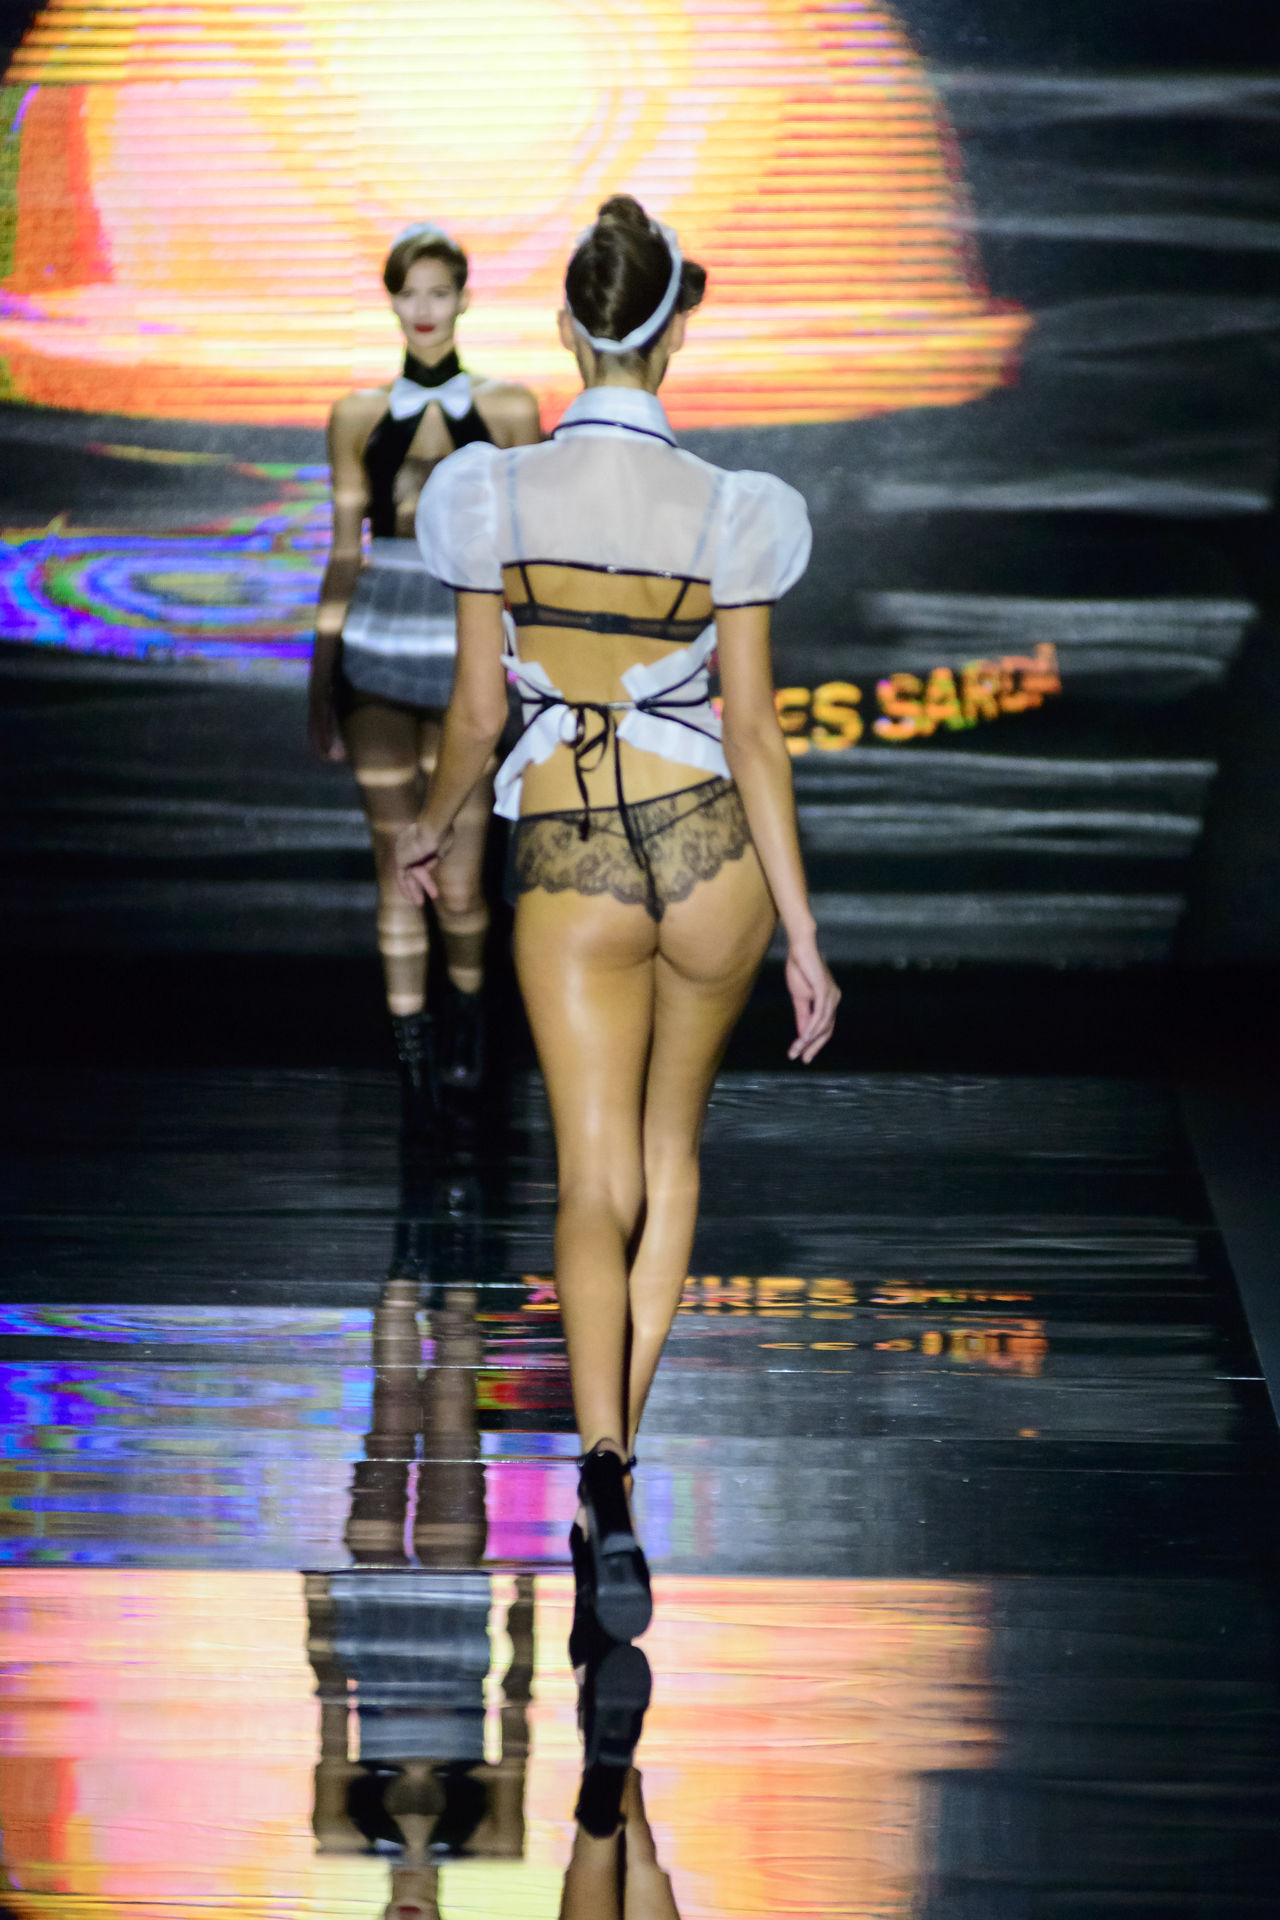 Andres Sarda during Mercedes Benz Fashion Week Autumn-Winter 2016 in Madrid. Catwalk Clothes Depth Of Field Editorial  Editorial Fashion Fashion Fashion Fashion Week Full Length Mbfw Mbfw2016 Mbfwmadrid Mercedes Benz Fashion Week Model Occupation Person Real People Standing Women Young Adult Young Women